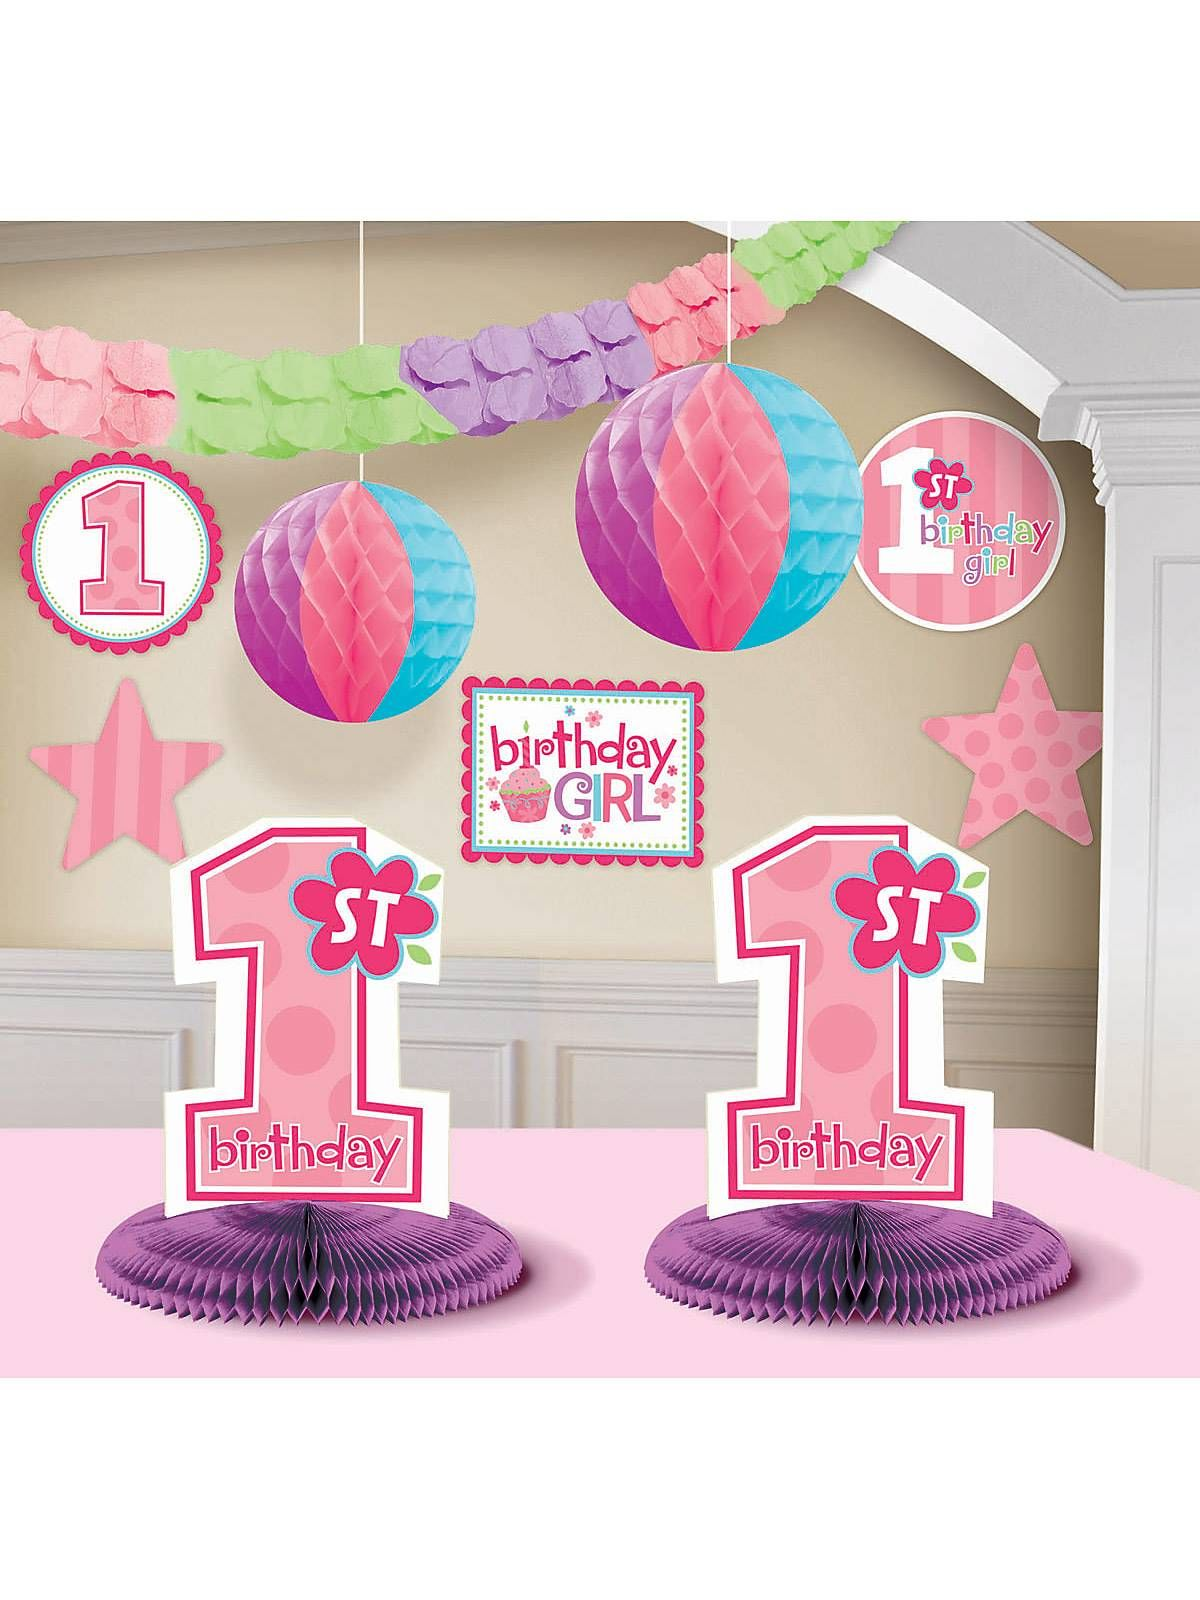 1st Birthday Girl Decorating Kit! See more birthday party